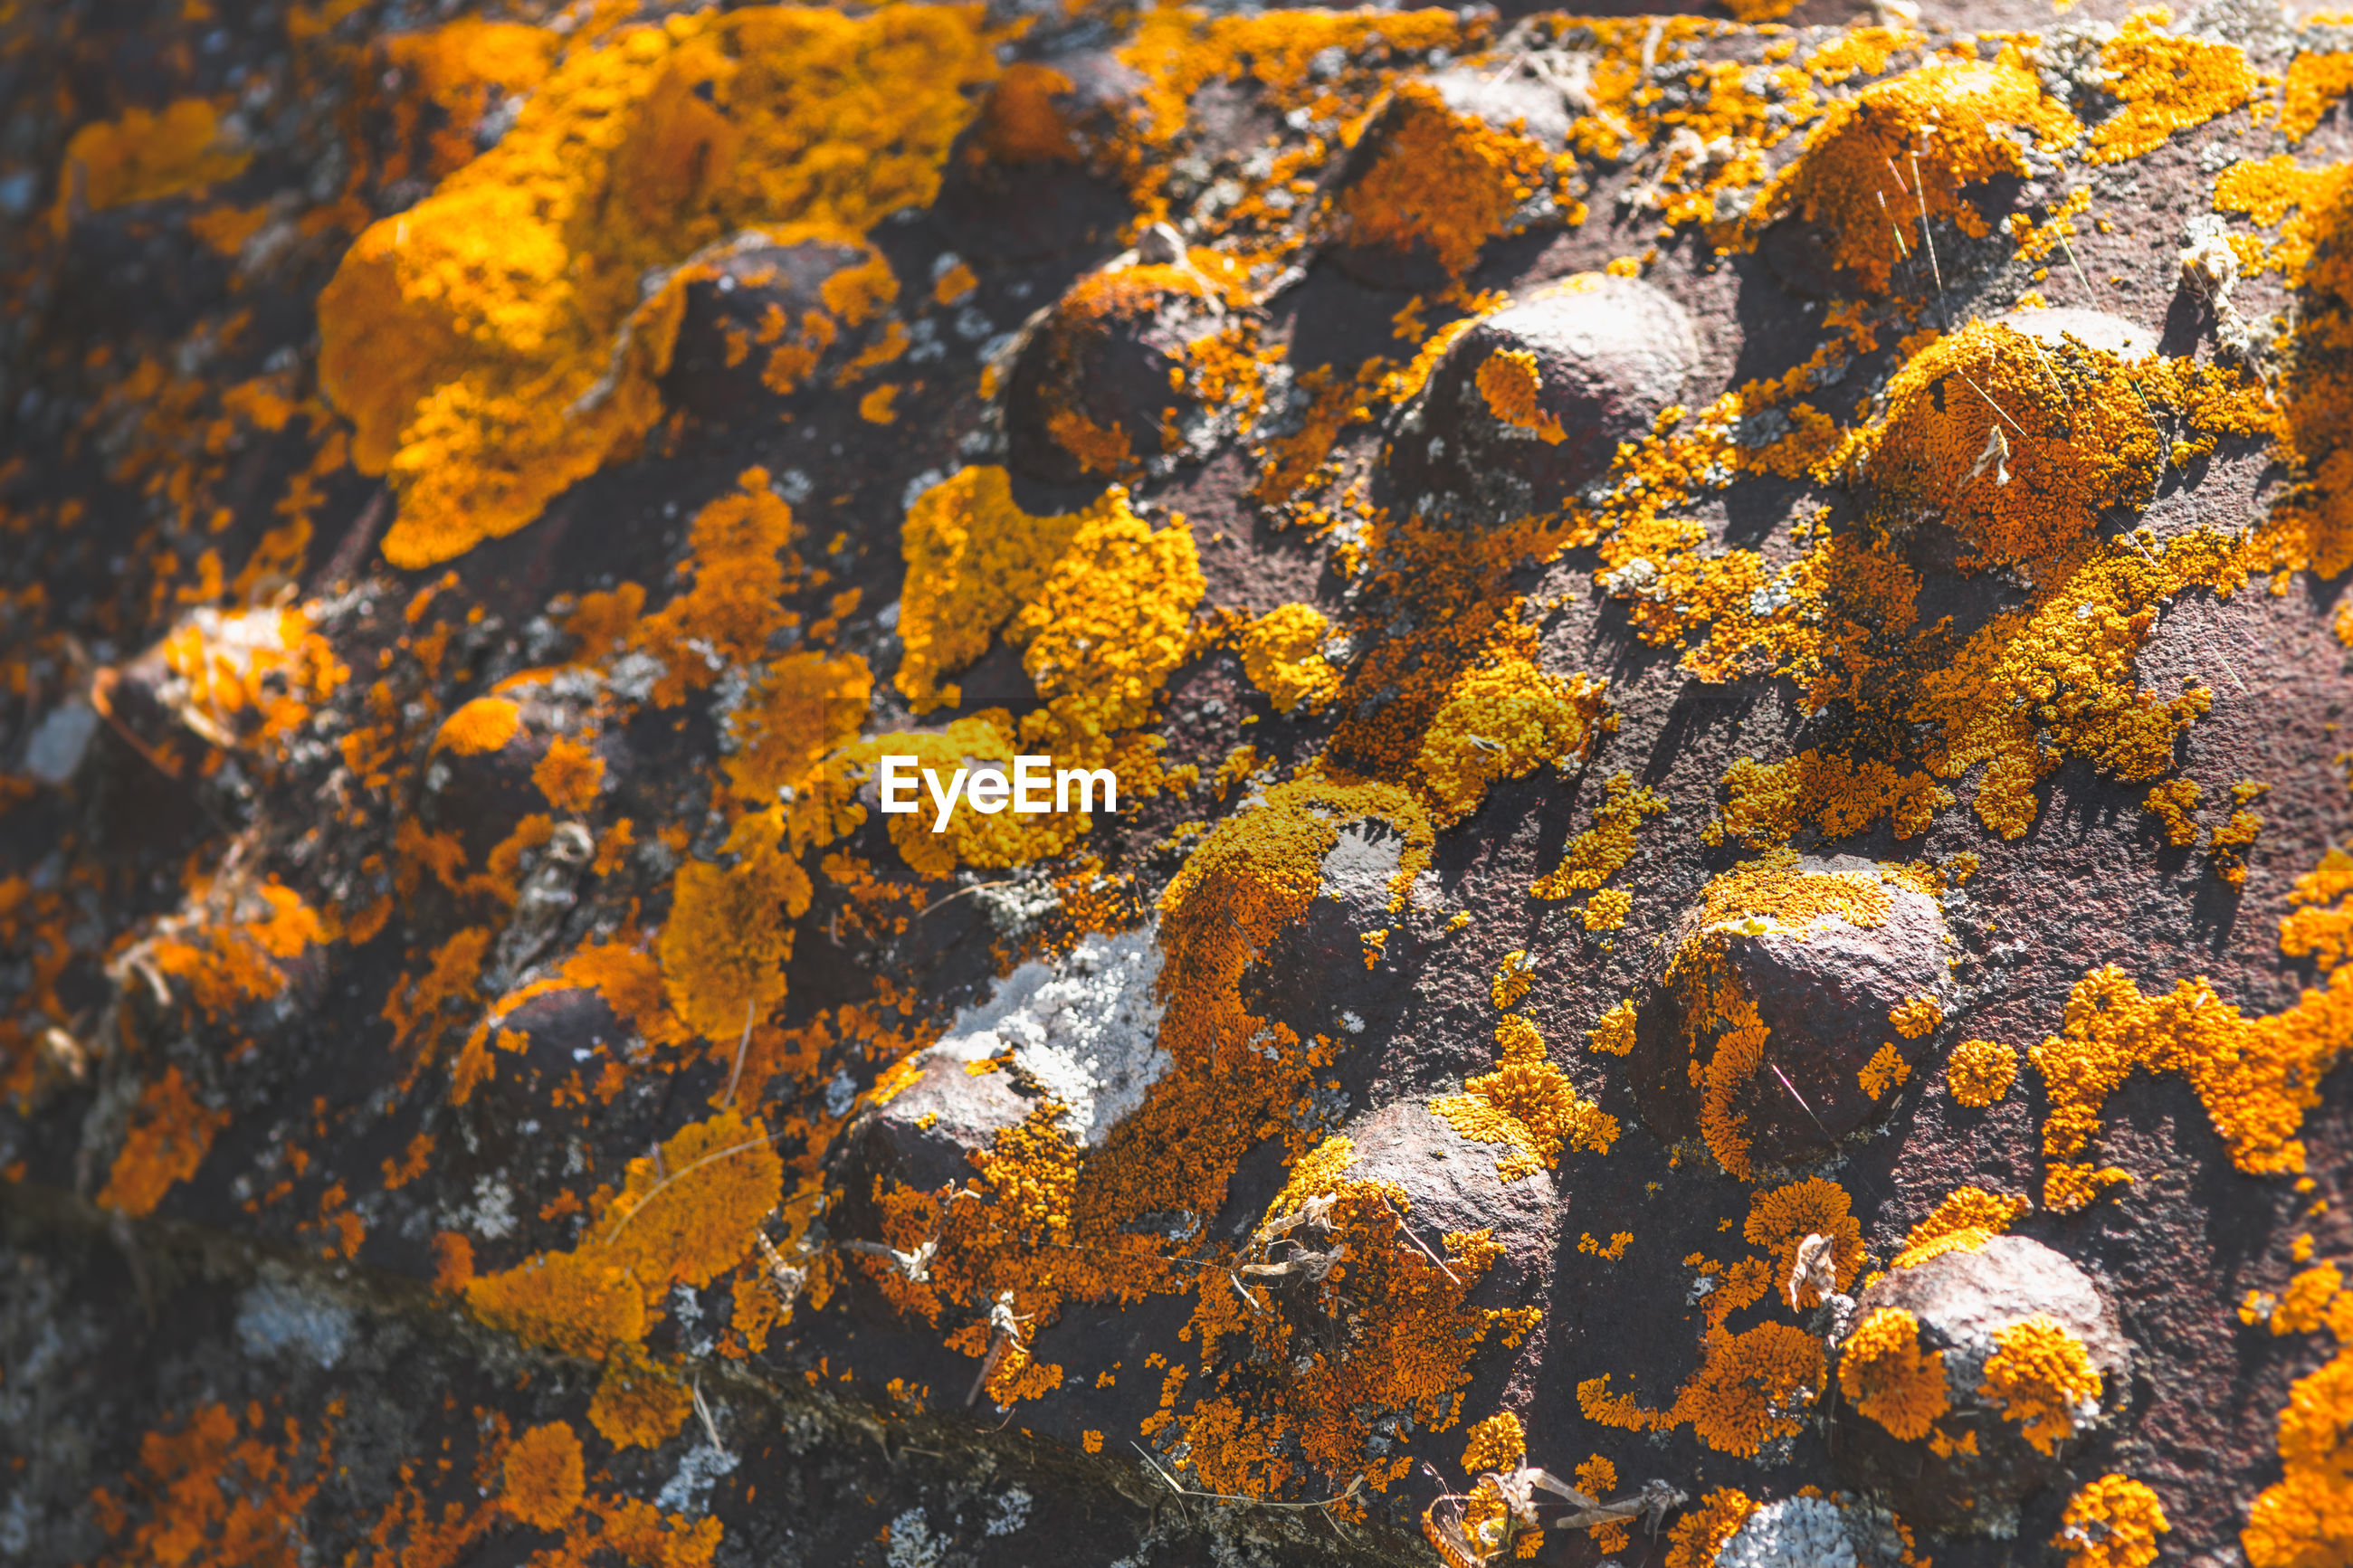 Close-up of lichen on metal